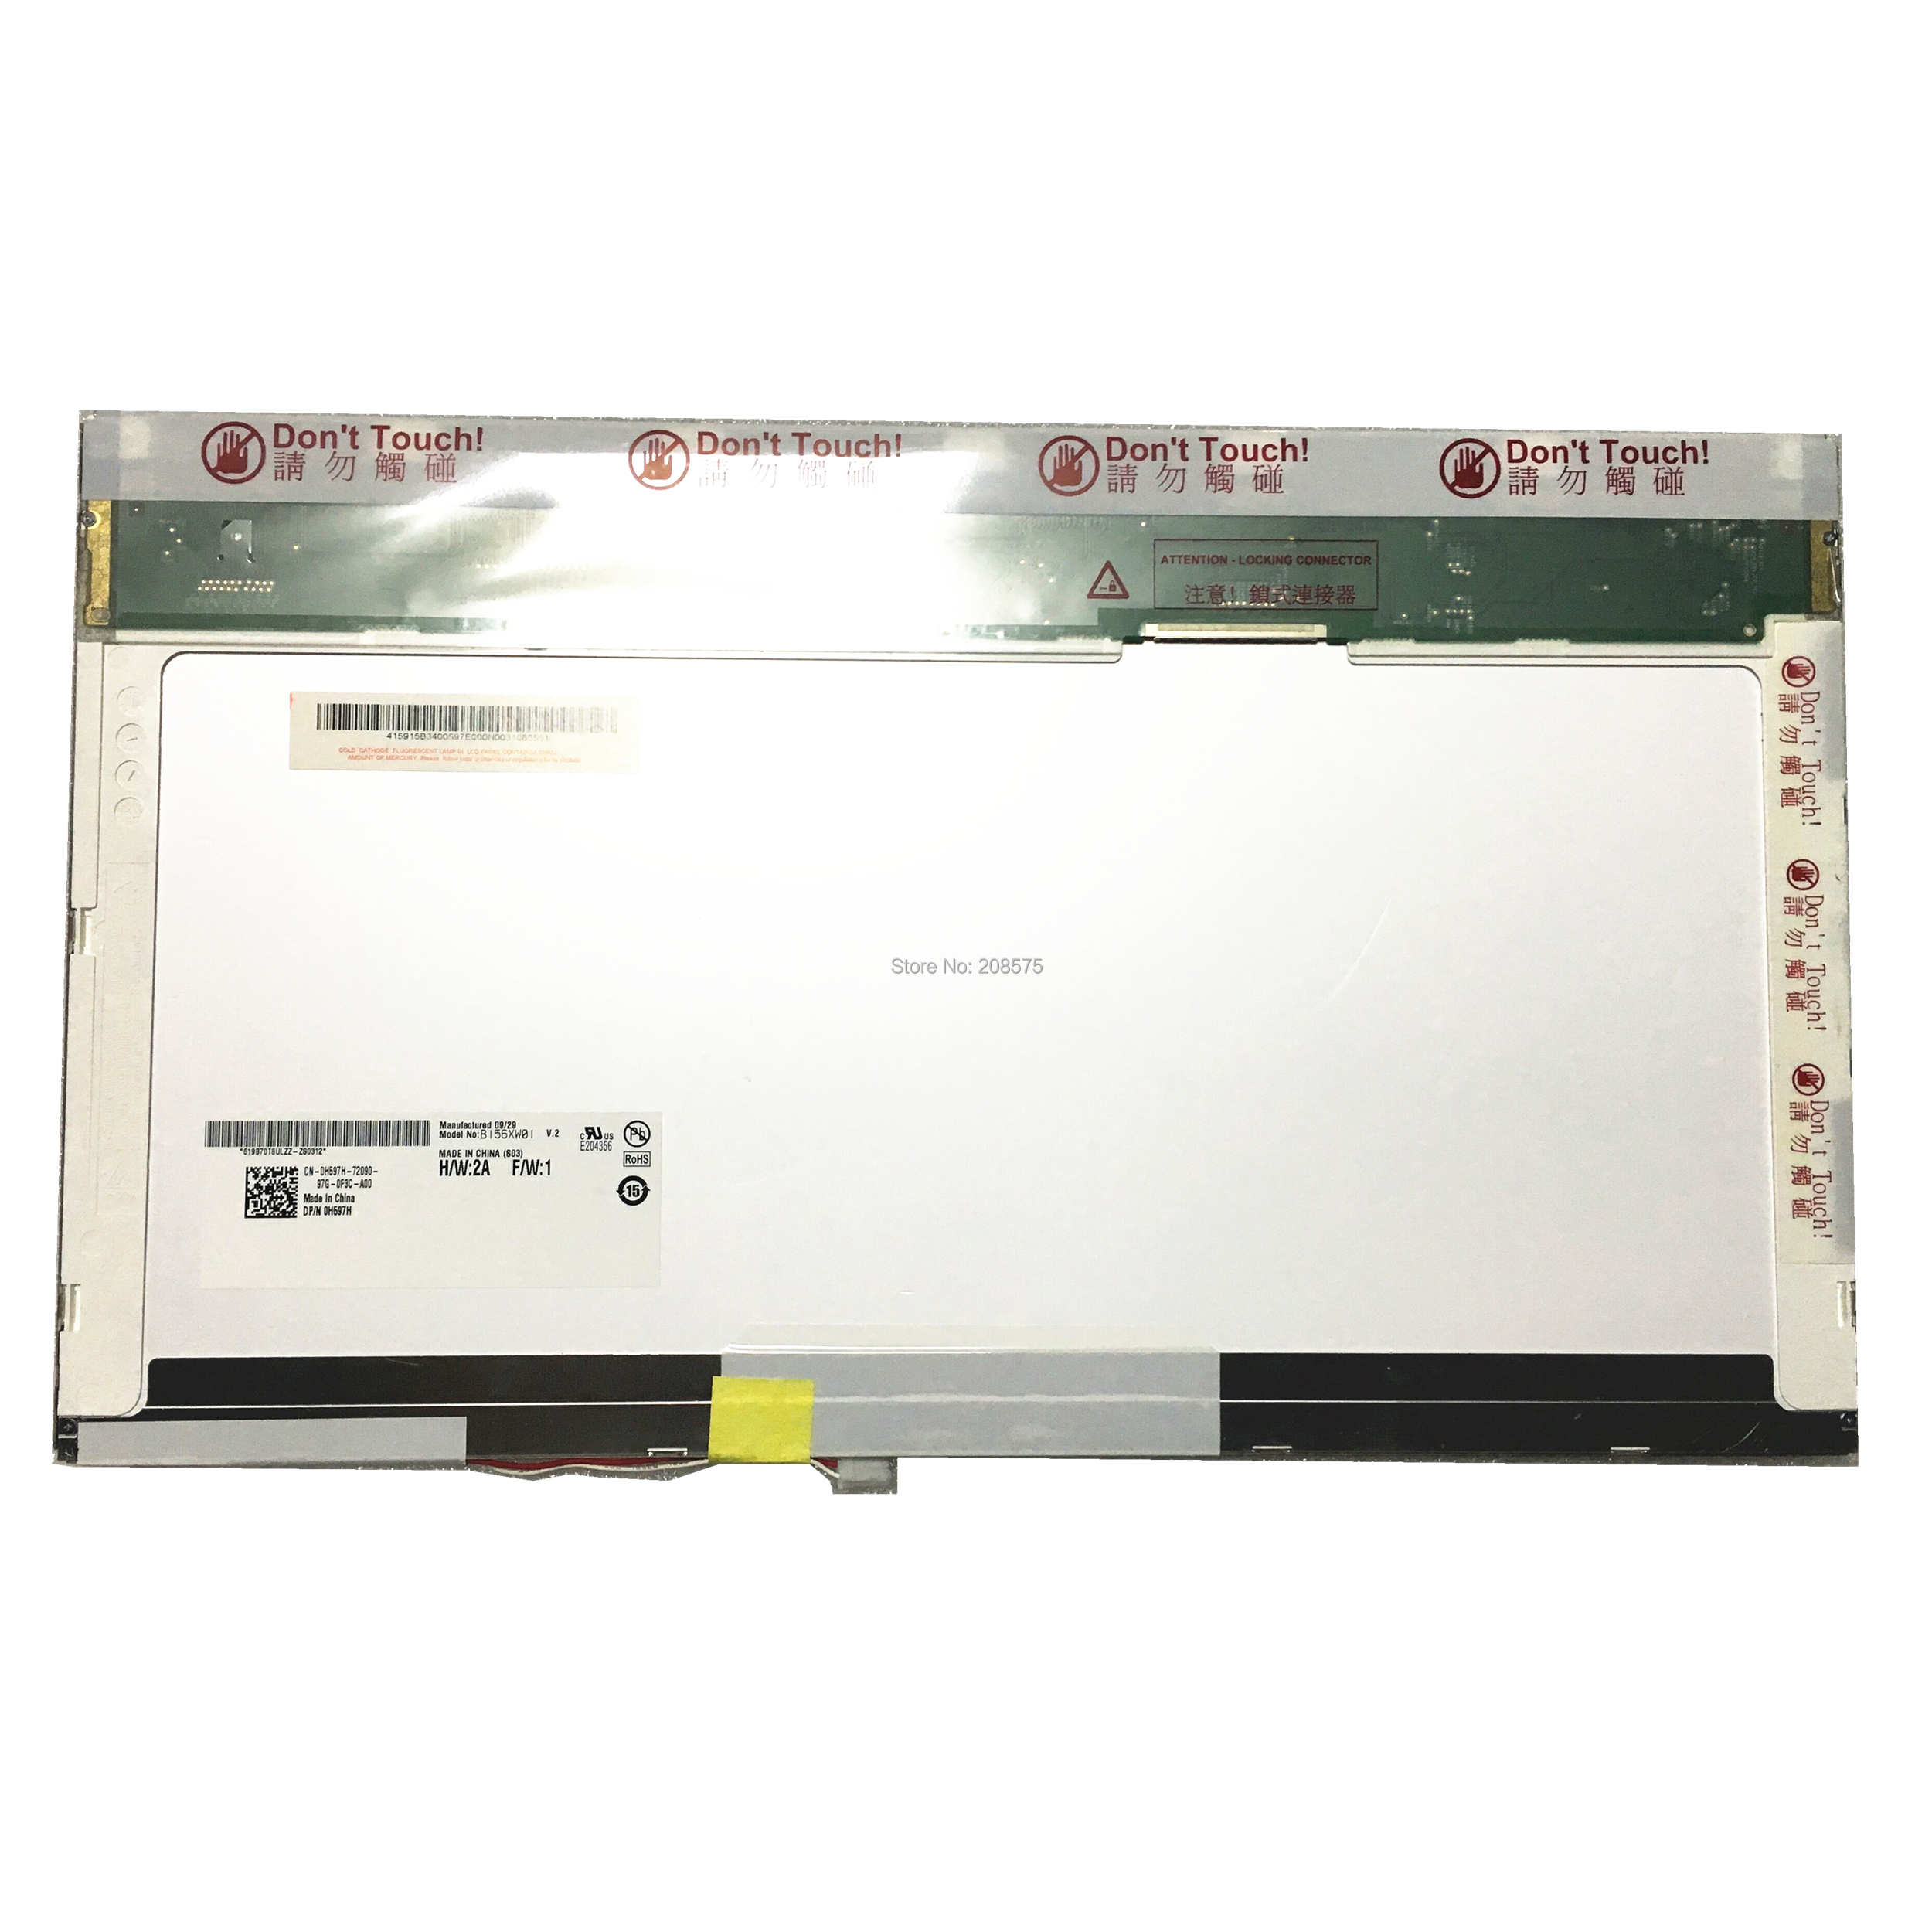 Free Shipping B156XW01 V2 V.2 V1 V0 V3 LTN156AT01 LP156WH1 TLC1 CLAA156WA01A N156B3-L02 15.6 inch LCD screen 1366*768 LVDS 30pinFree Shipping B156XW01 V2 V.2 V1 V0 V3 LTN156AT01 LP156WH1 TLC1 CLAA156WA01A N156B3-L02 15.6 inch LCD screen 1366*768 LVDS 30pin